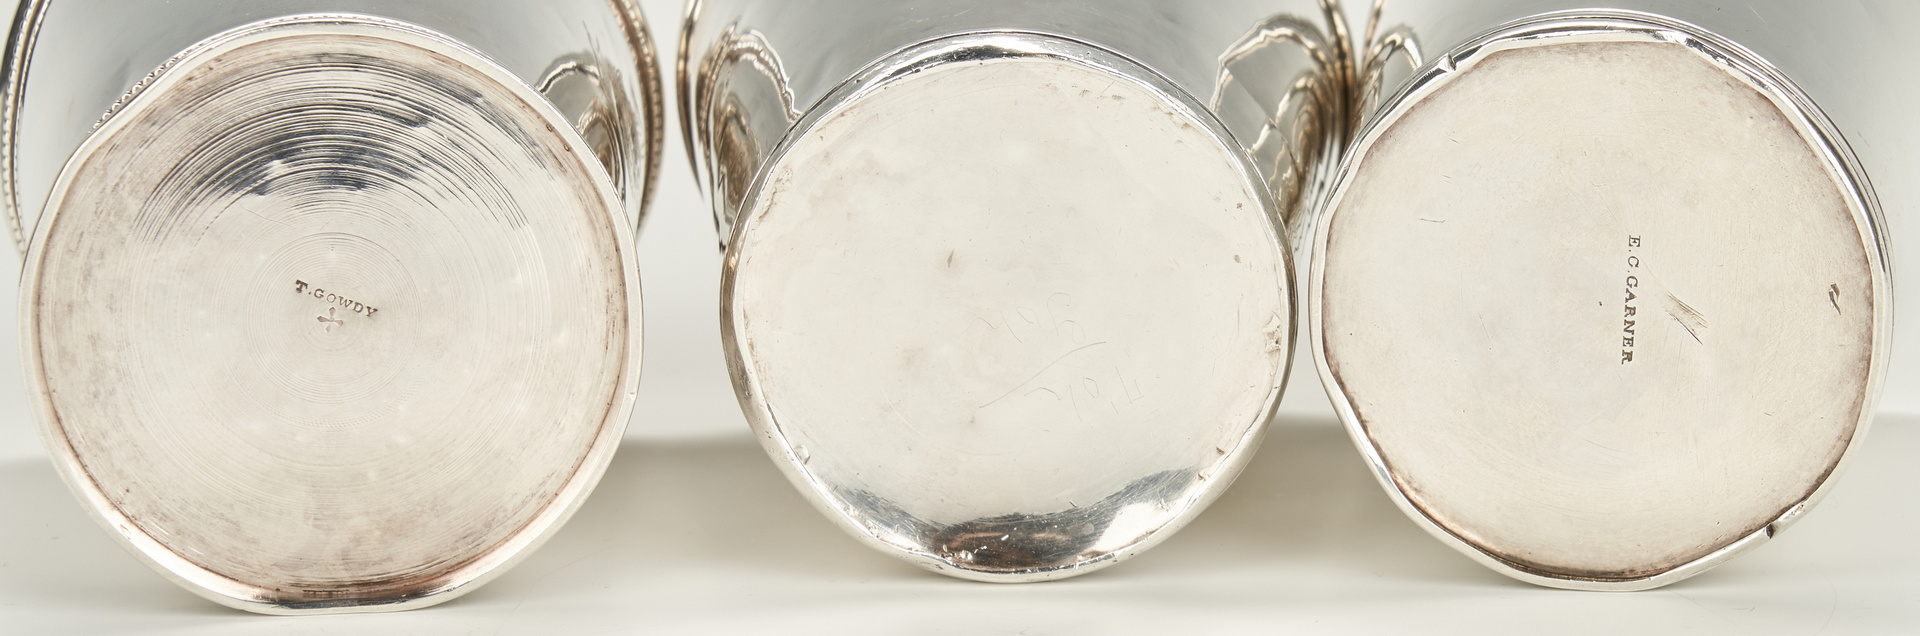 Lot 71: 3 Coin Silver Mint Julep Cups, Washington Family Crest